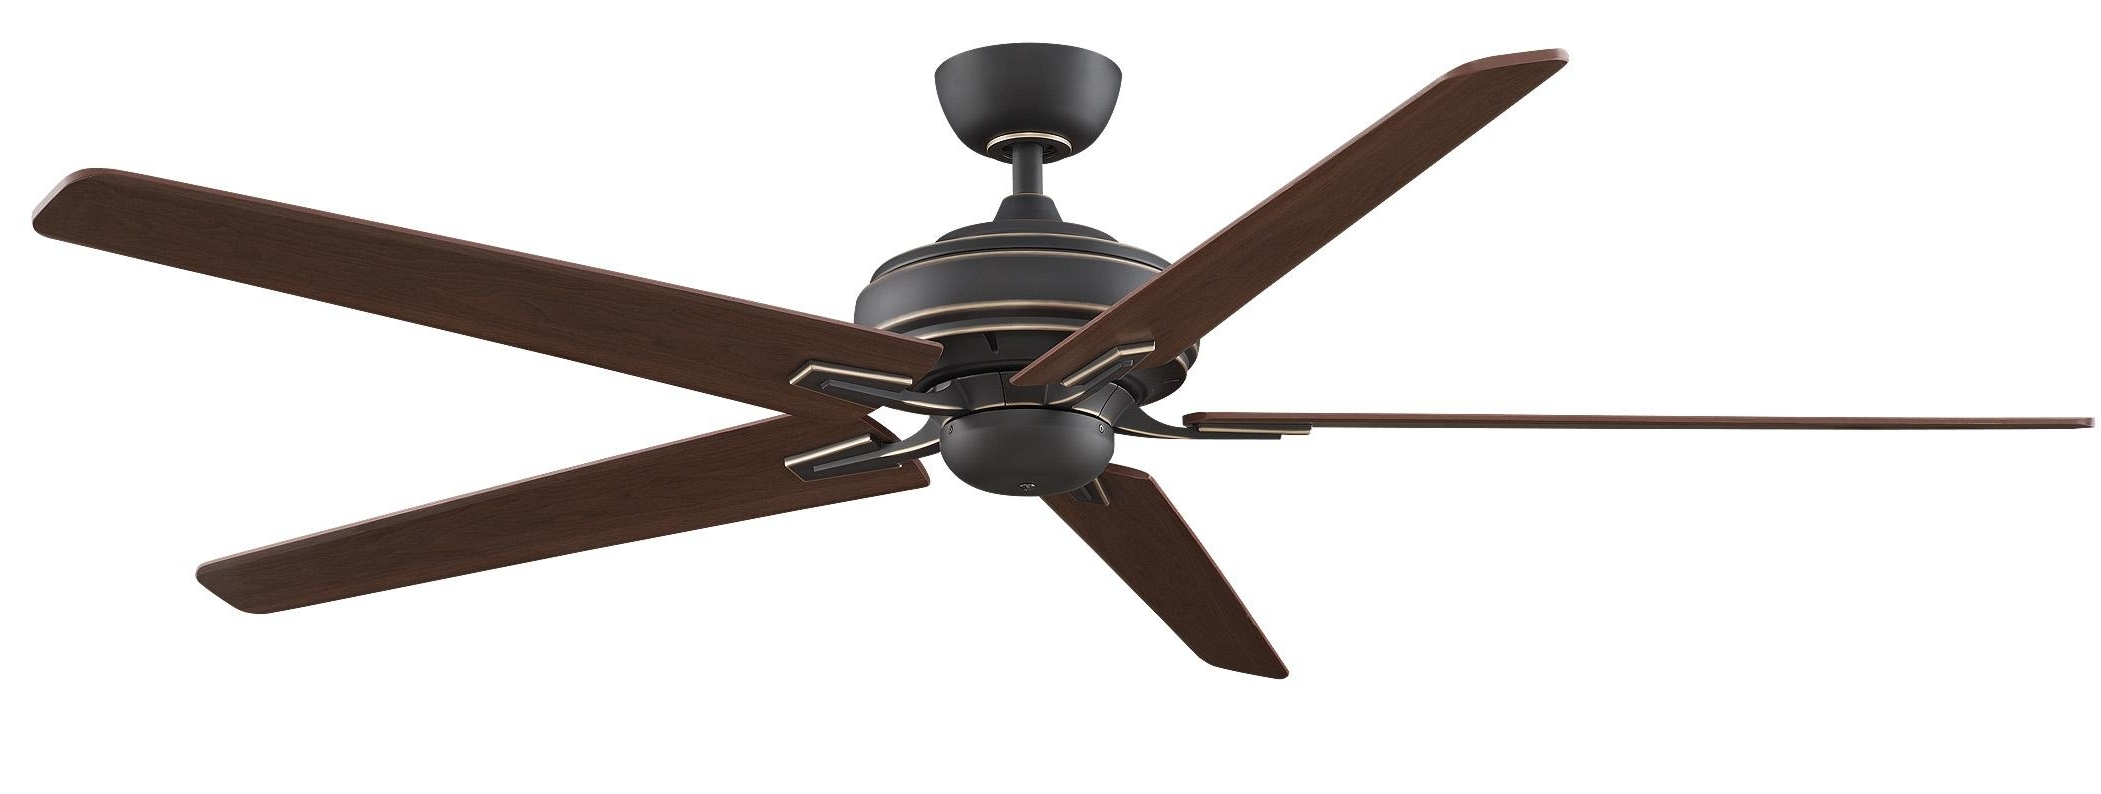 2018 Inch Outdoor Ceiling Fan With 60 Ceiling Fan With Light Intended For 72 Inch Outdoor Ceiling Fans With Light (View 2 of 20)